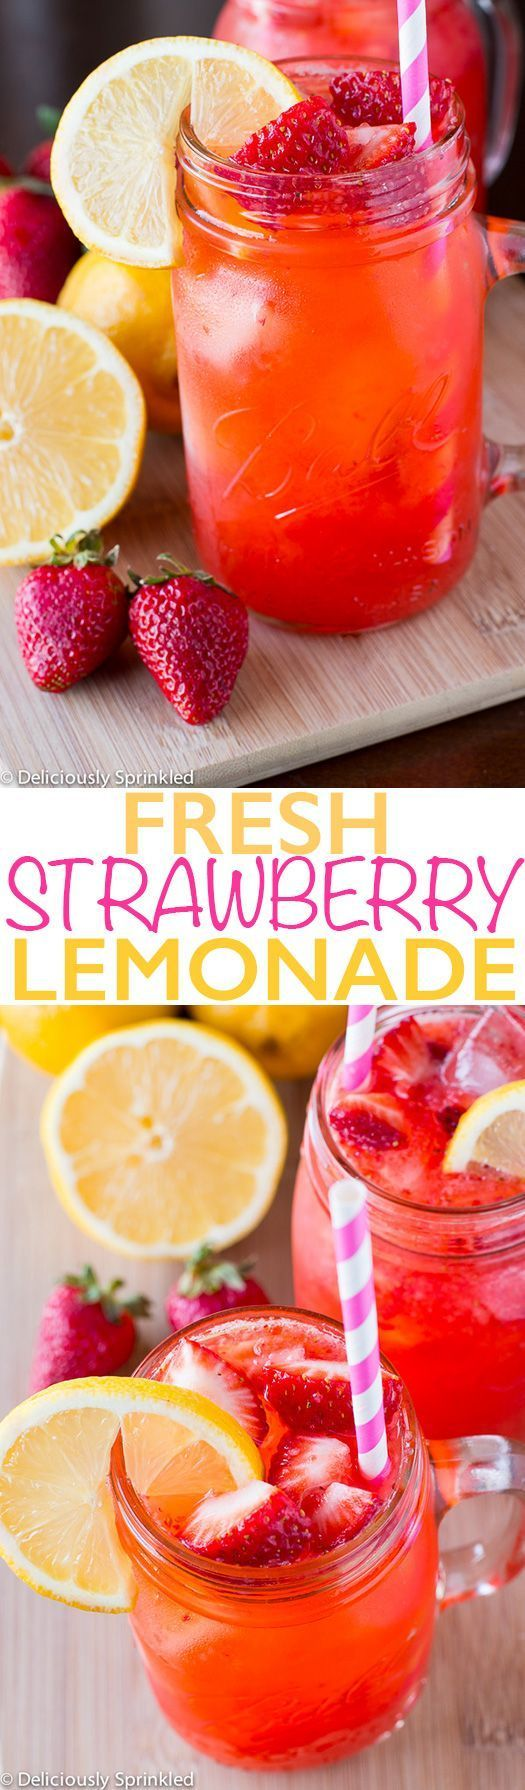 Fresh Strawberry Lemonade: Delicious, super quick and easy to prepare.